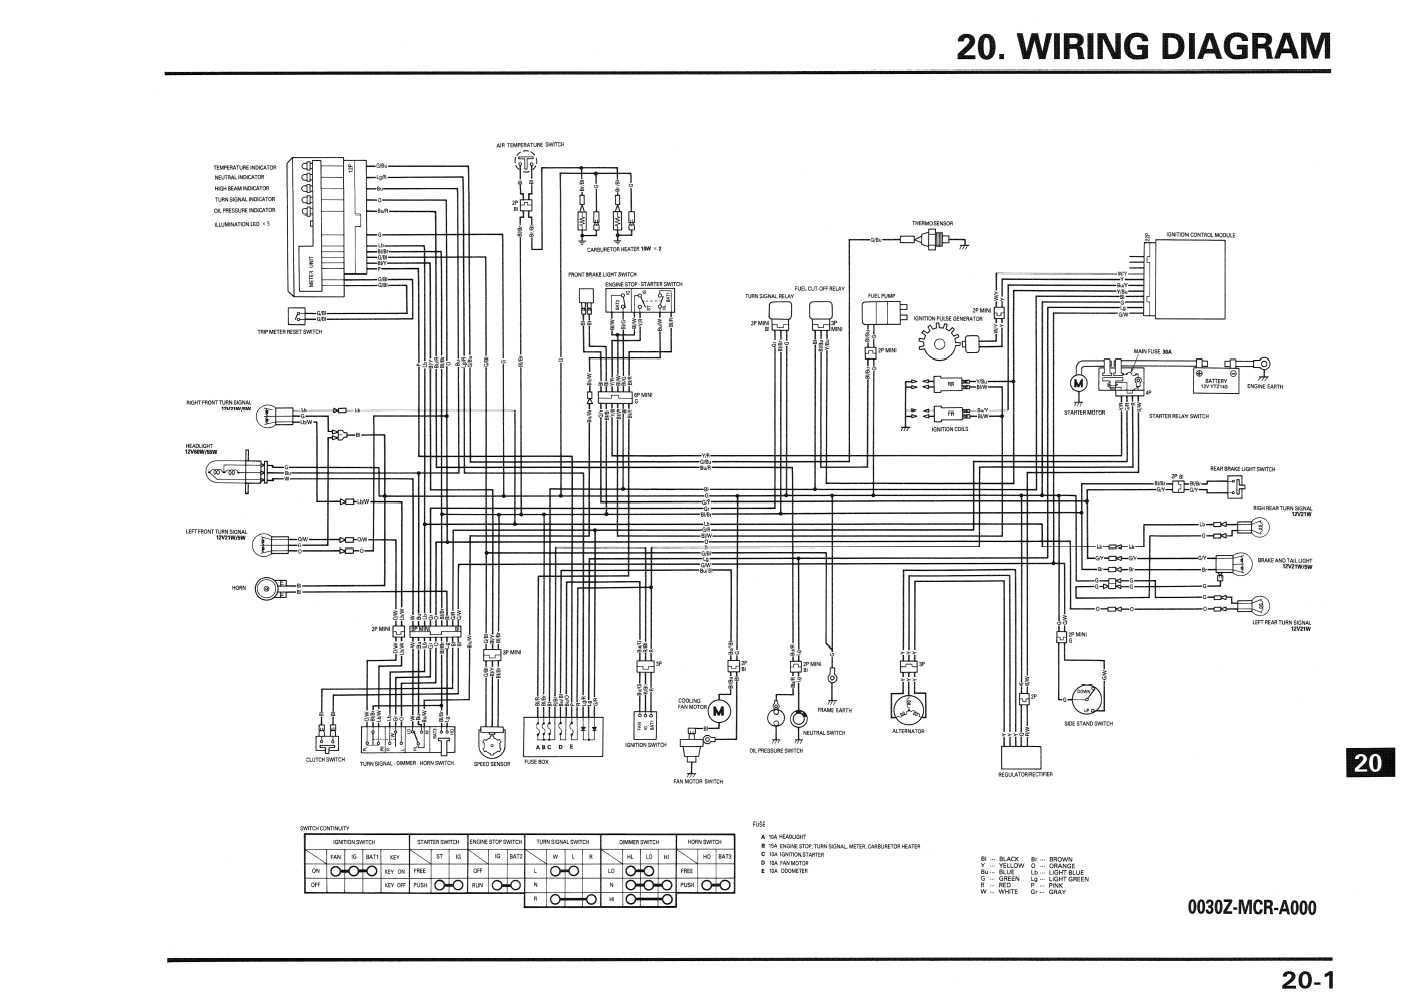 61mcr02_348_1 honda vt750dc shop manual wiring diagram shop wiring diagrams at fashall.co